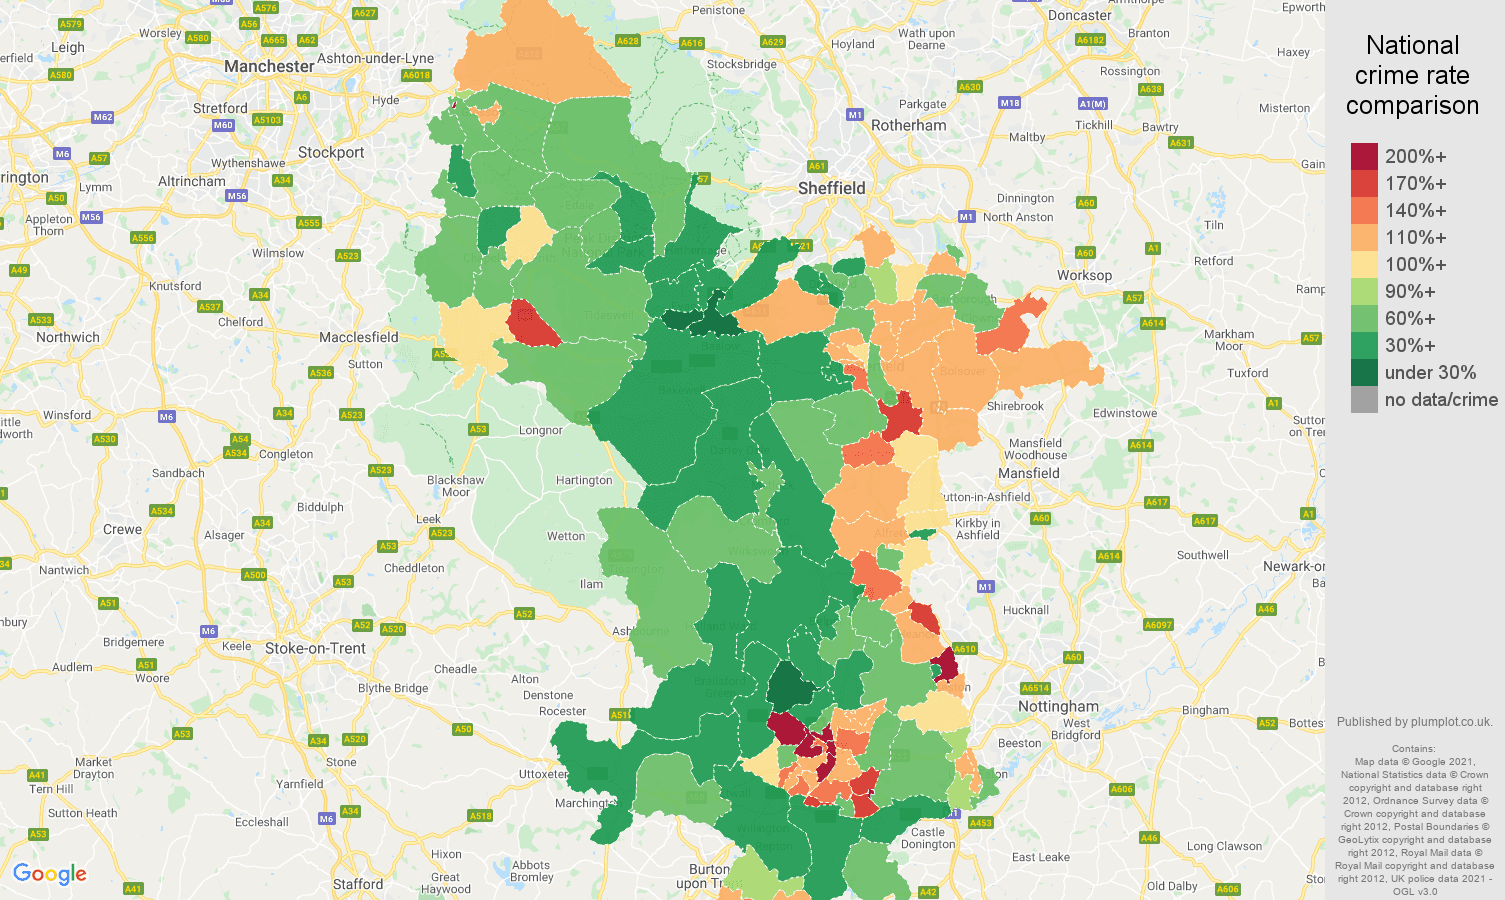 Derbyshire violent crime rate comparison map